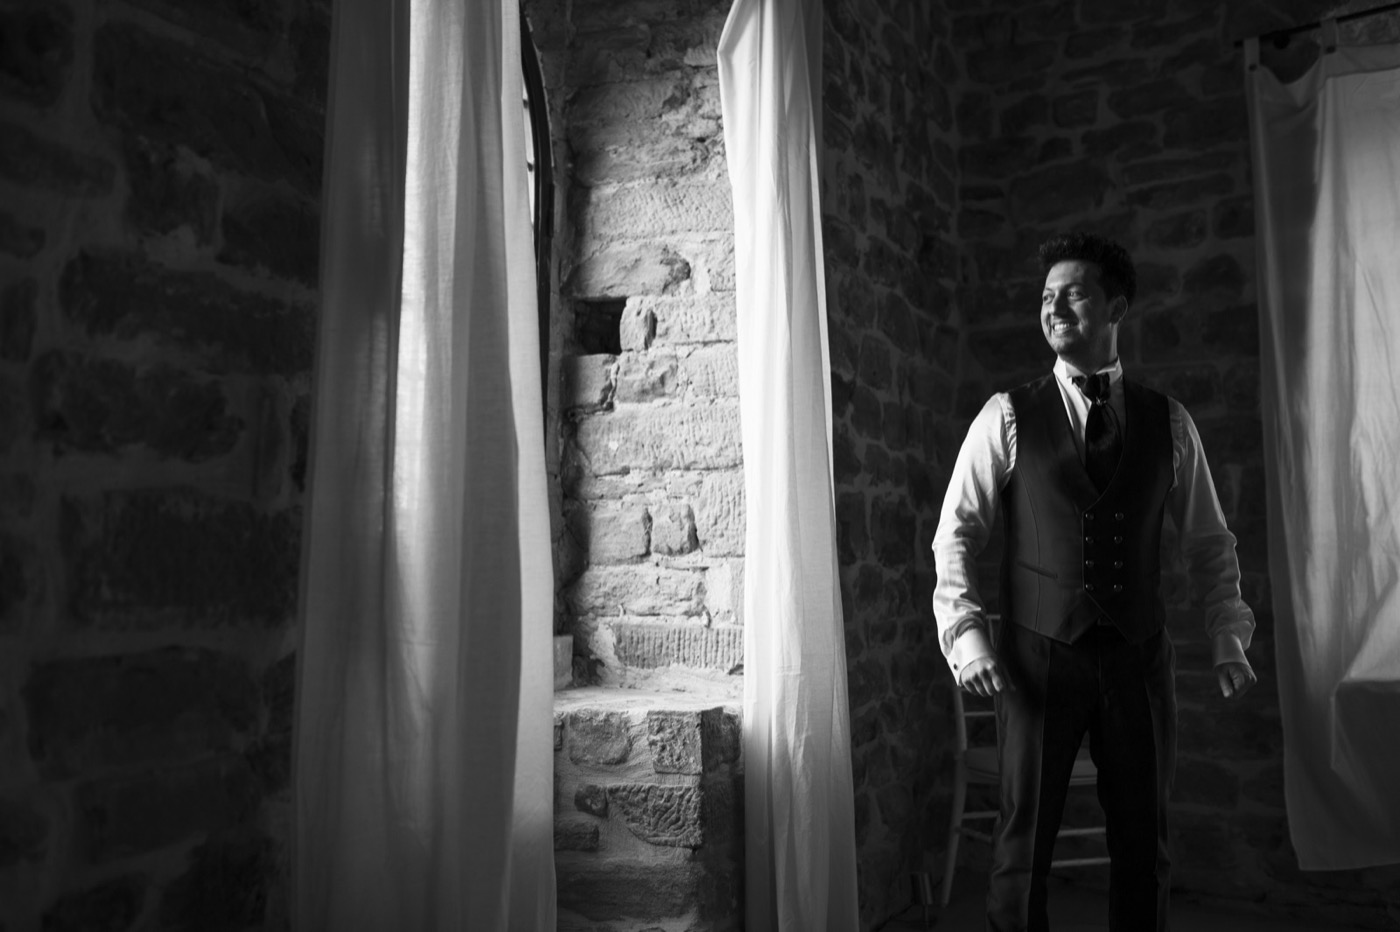 Claudio-Coppola-wedding-photographer-castello-rosciano-torgiano-2